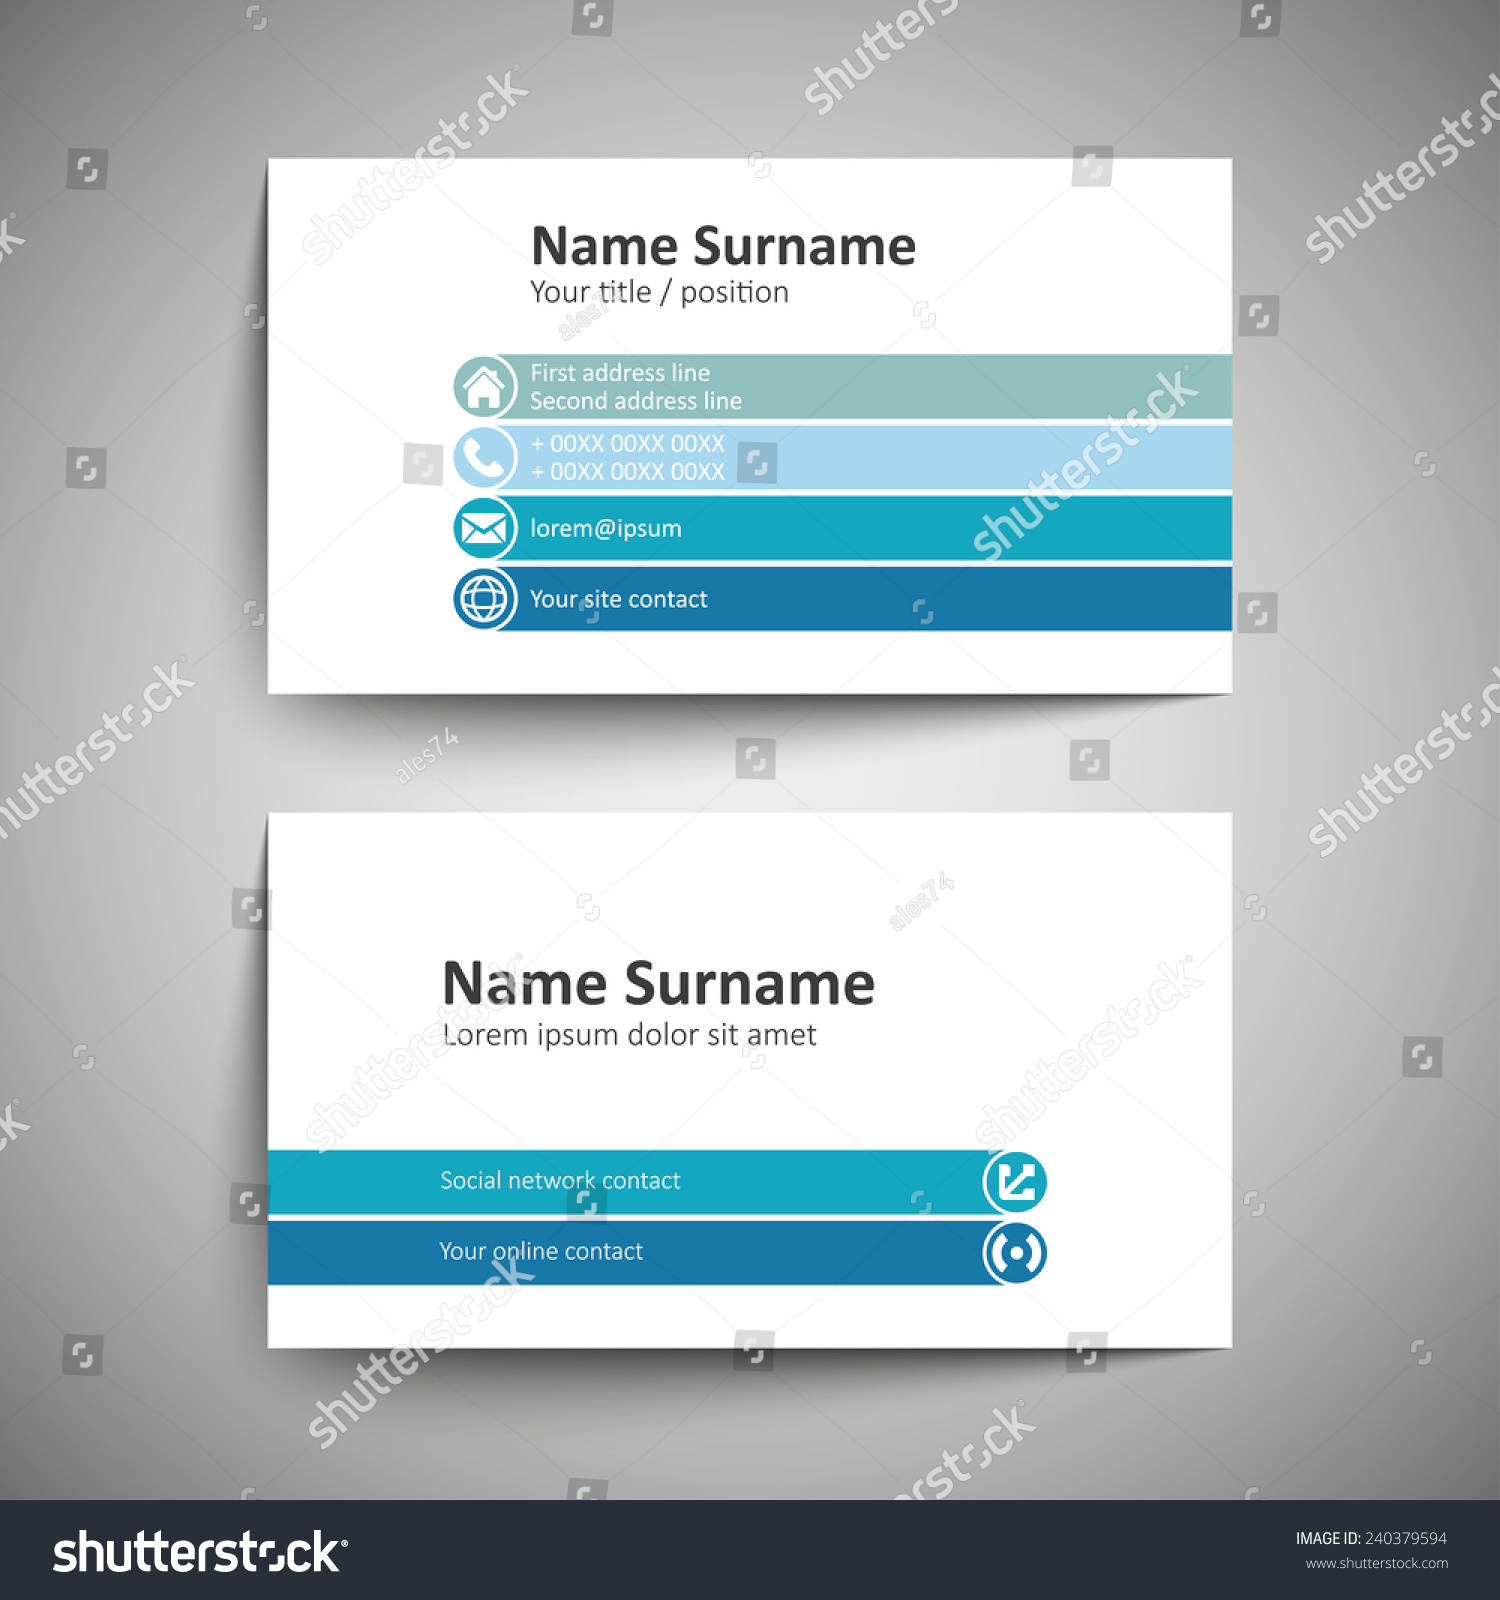 Modern Simple Business Card Template Vector Stock Vector - Simple business card templates